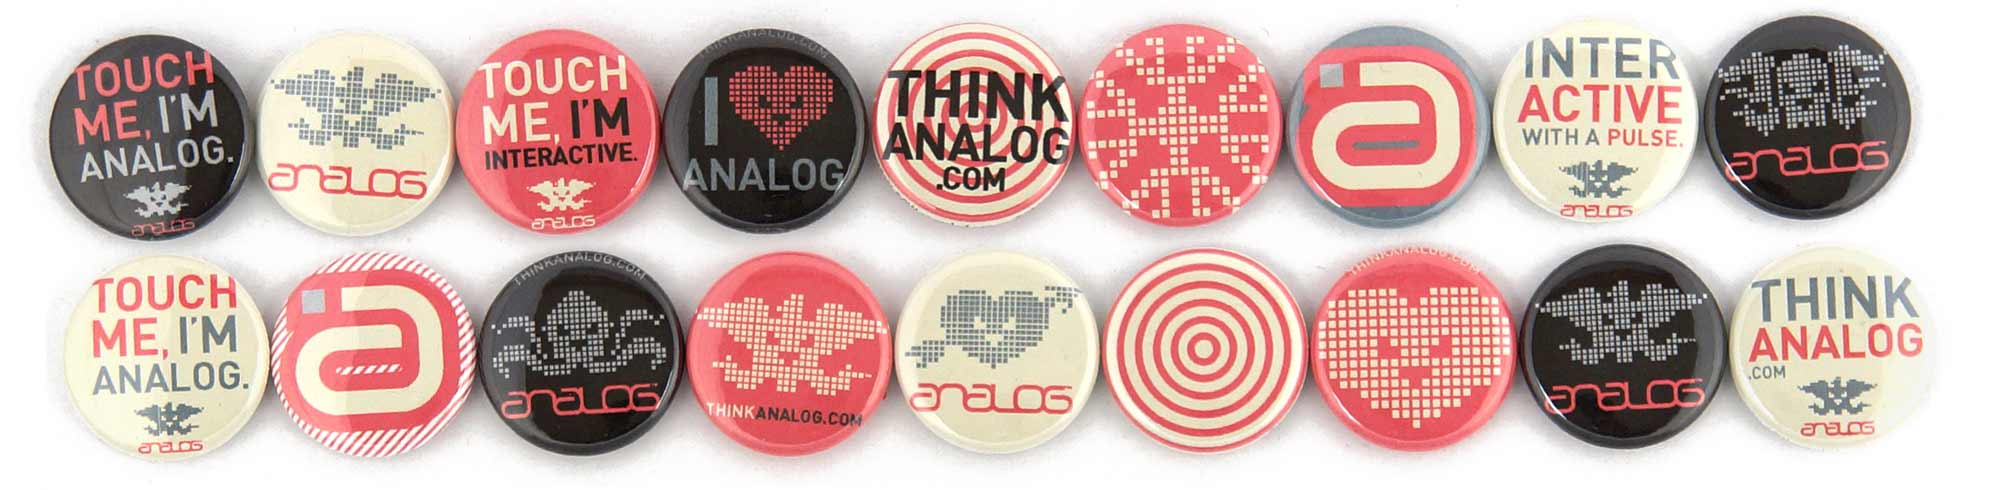 Analog Buttons